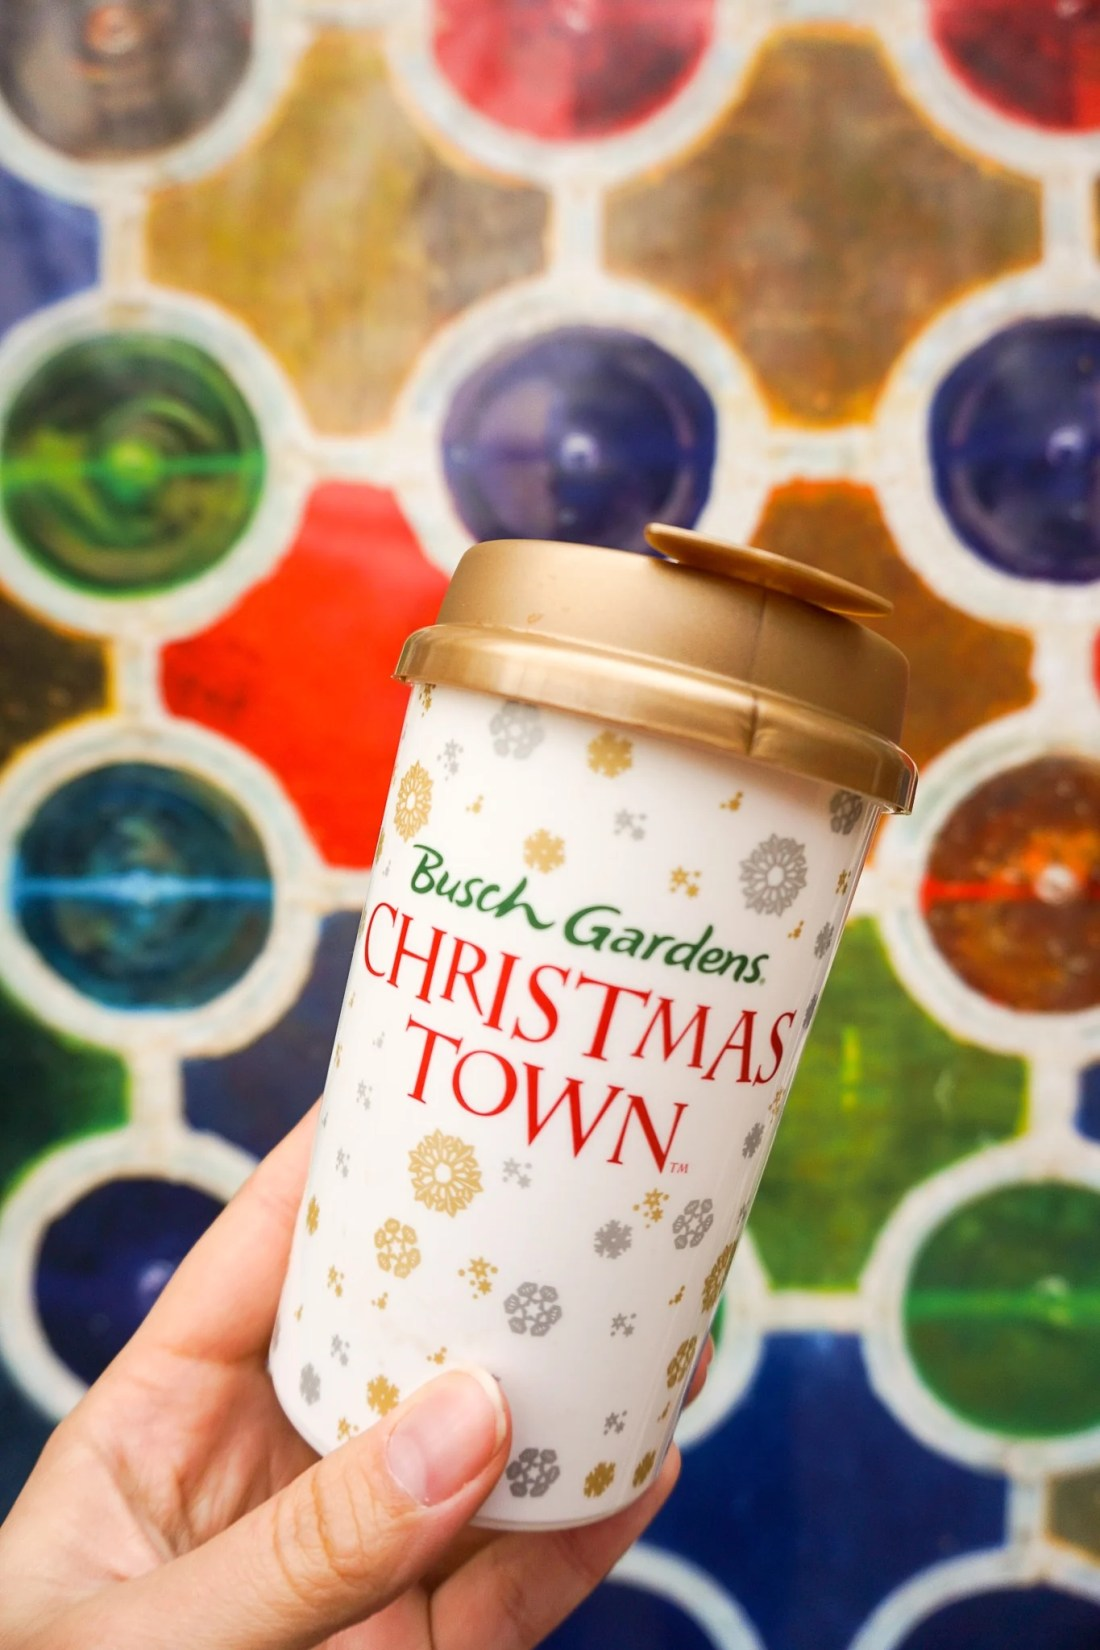 Hot Chocolate Suvinor Cup 15 Instagram Worthy Walls Christmas Town Busch Gardens. Instagram Worthy Walls and Locations around Busch Gardens Christmas Town in Williamsburg Virginia.